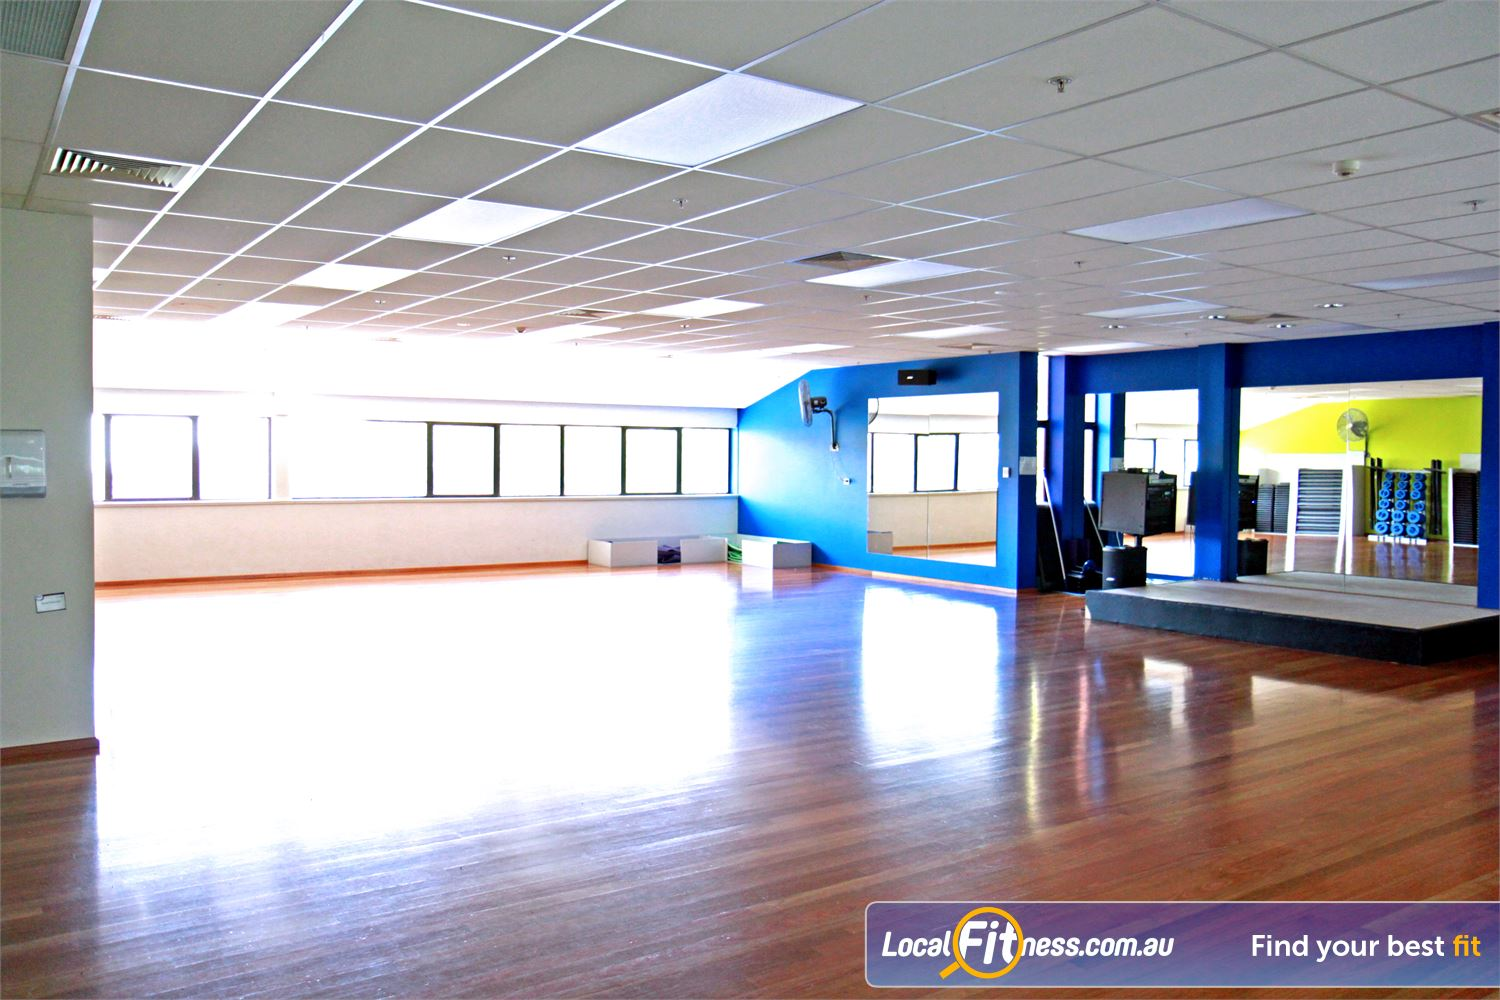 Goodlife Health Clubs Near Bowden Enjoy popular group fitness classes such as Pilates and North Adelaide Yoga.